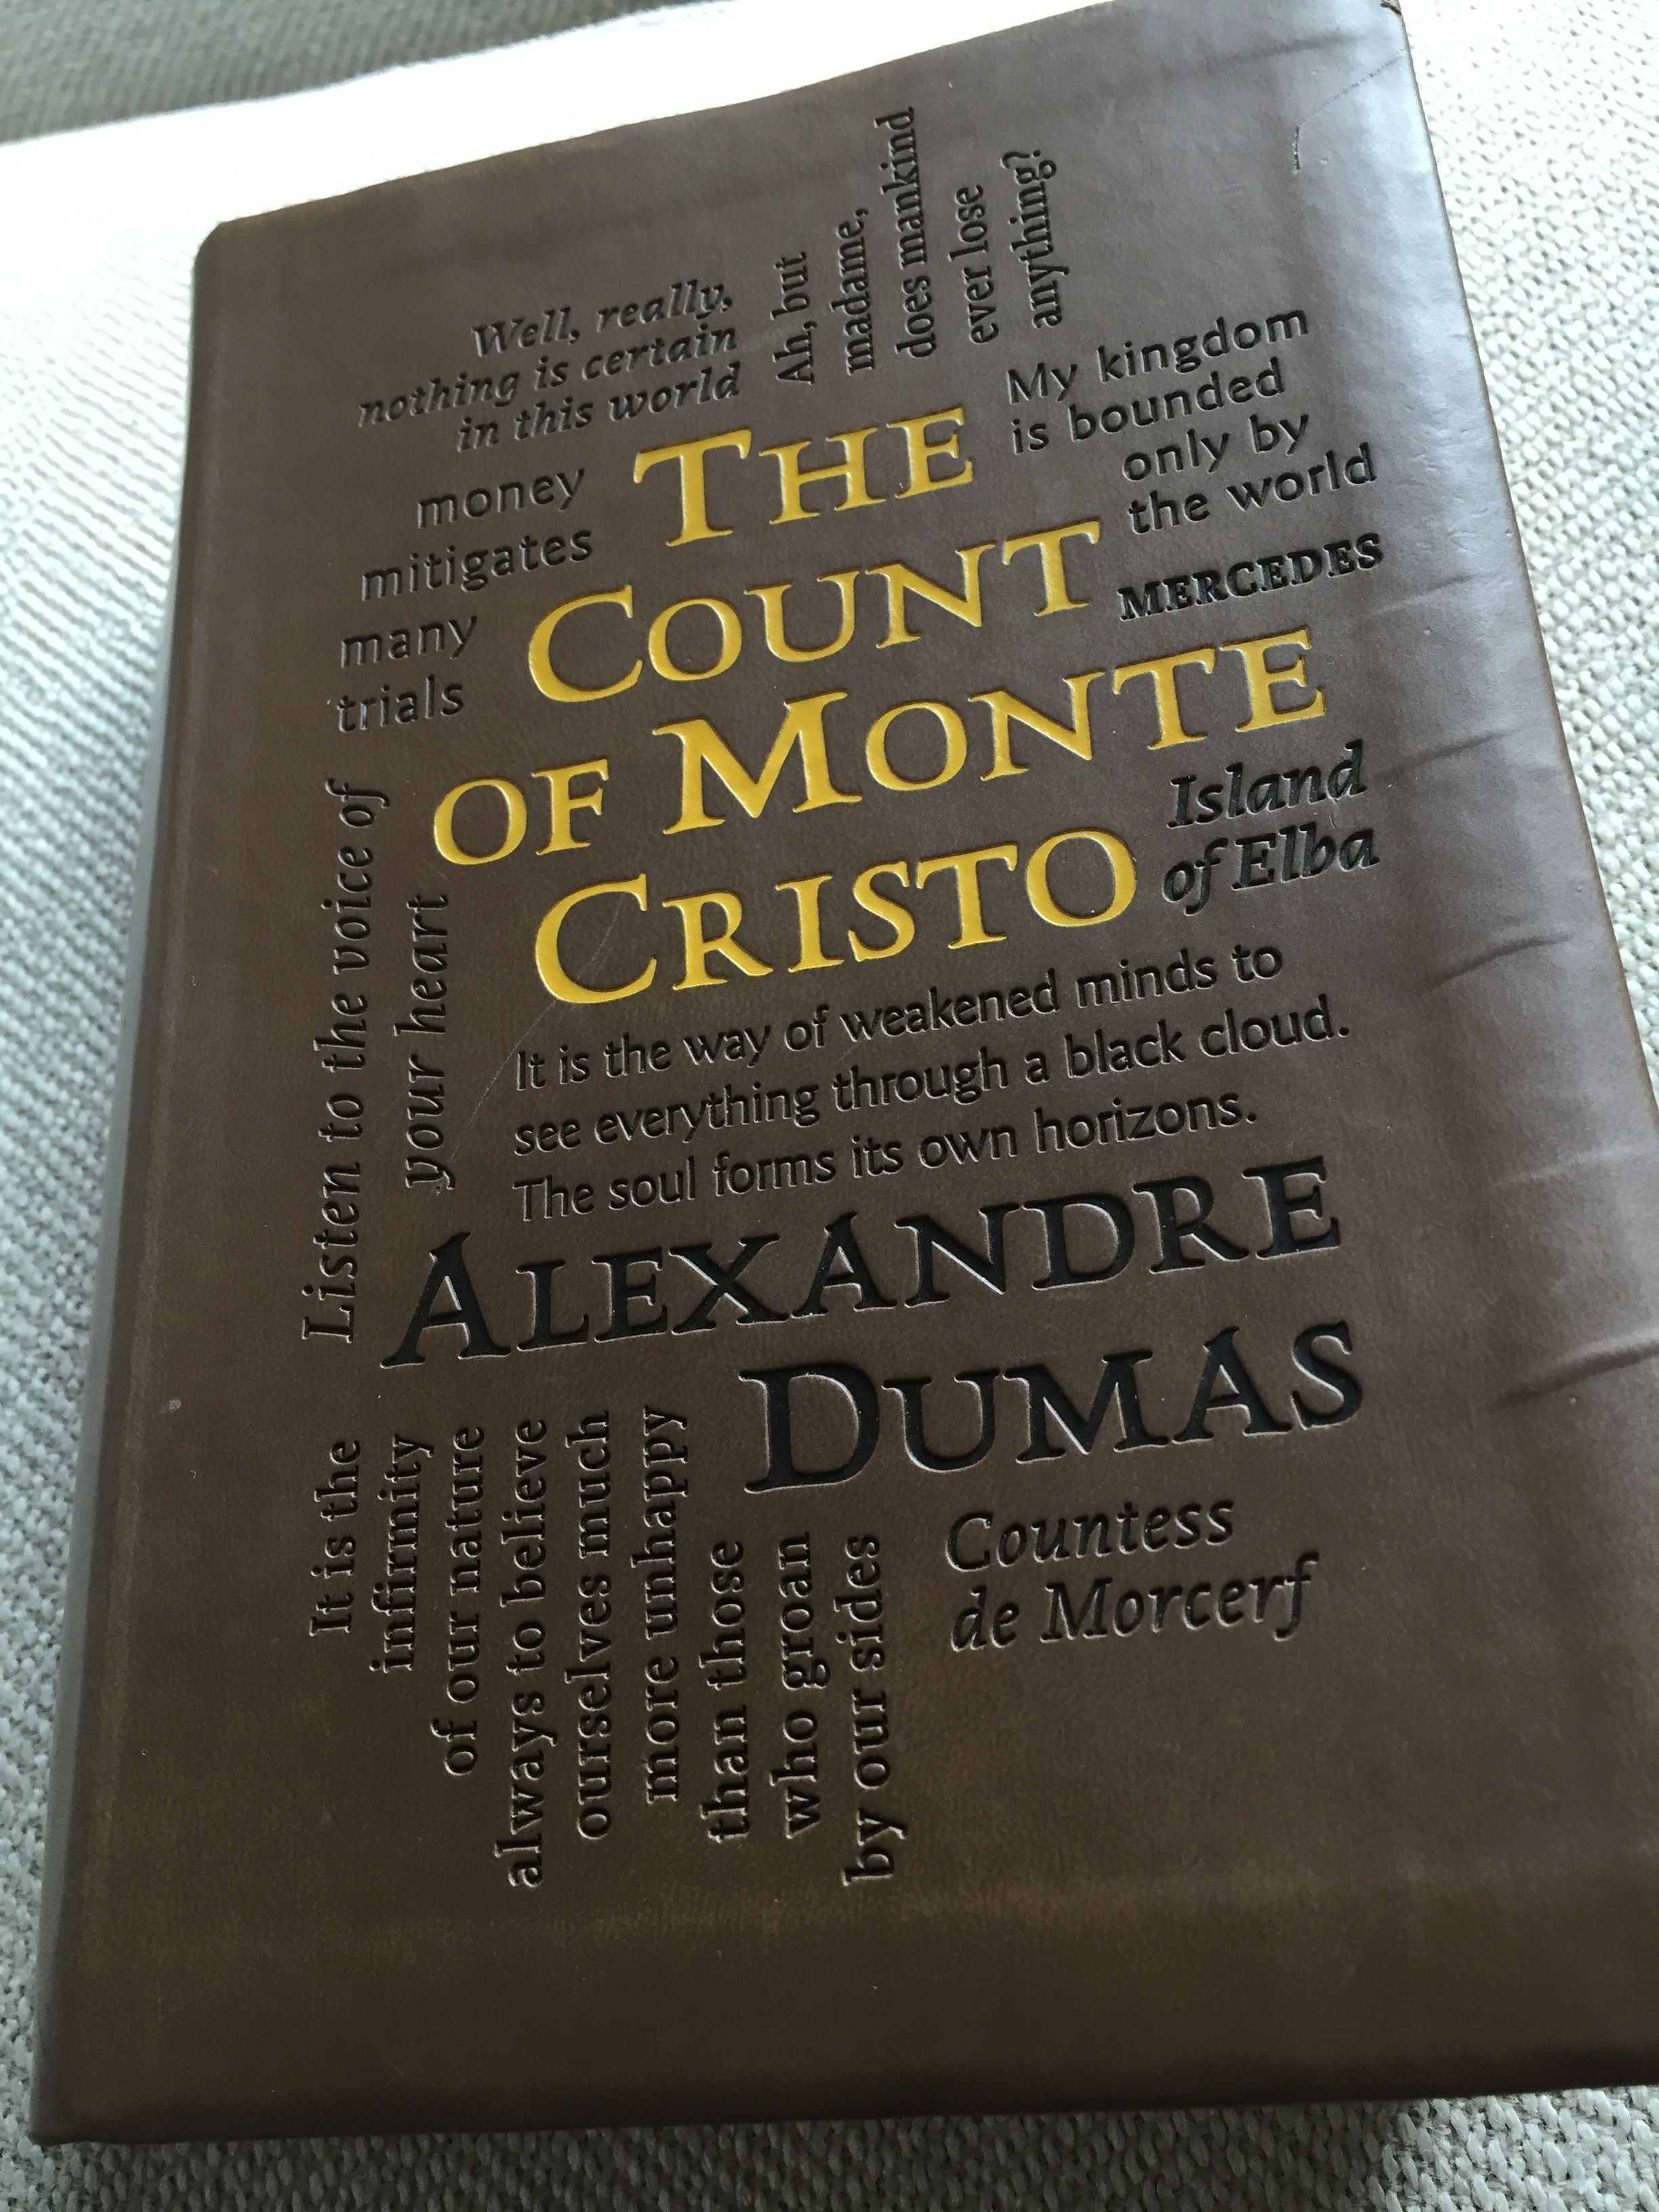 The Count of Monte Cristo, which I just finished